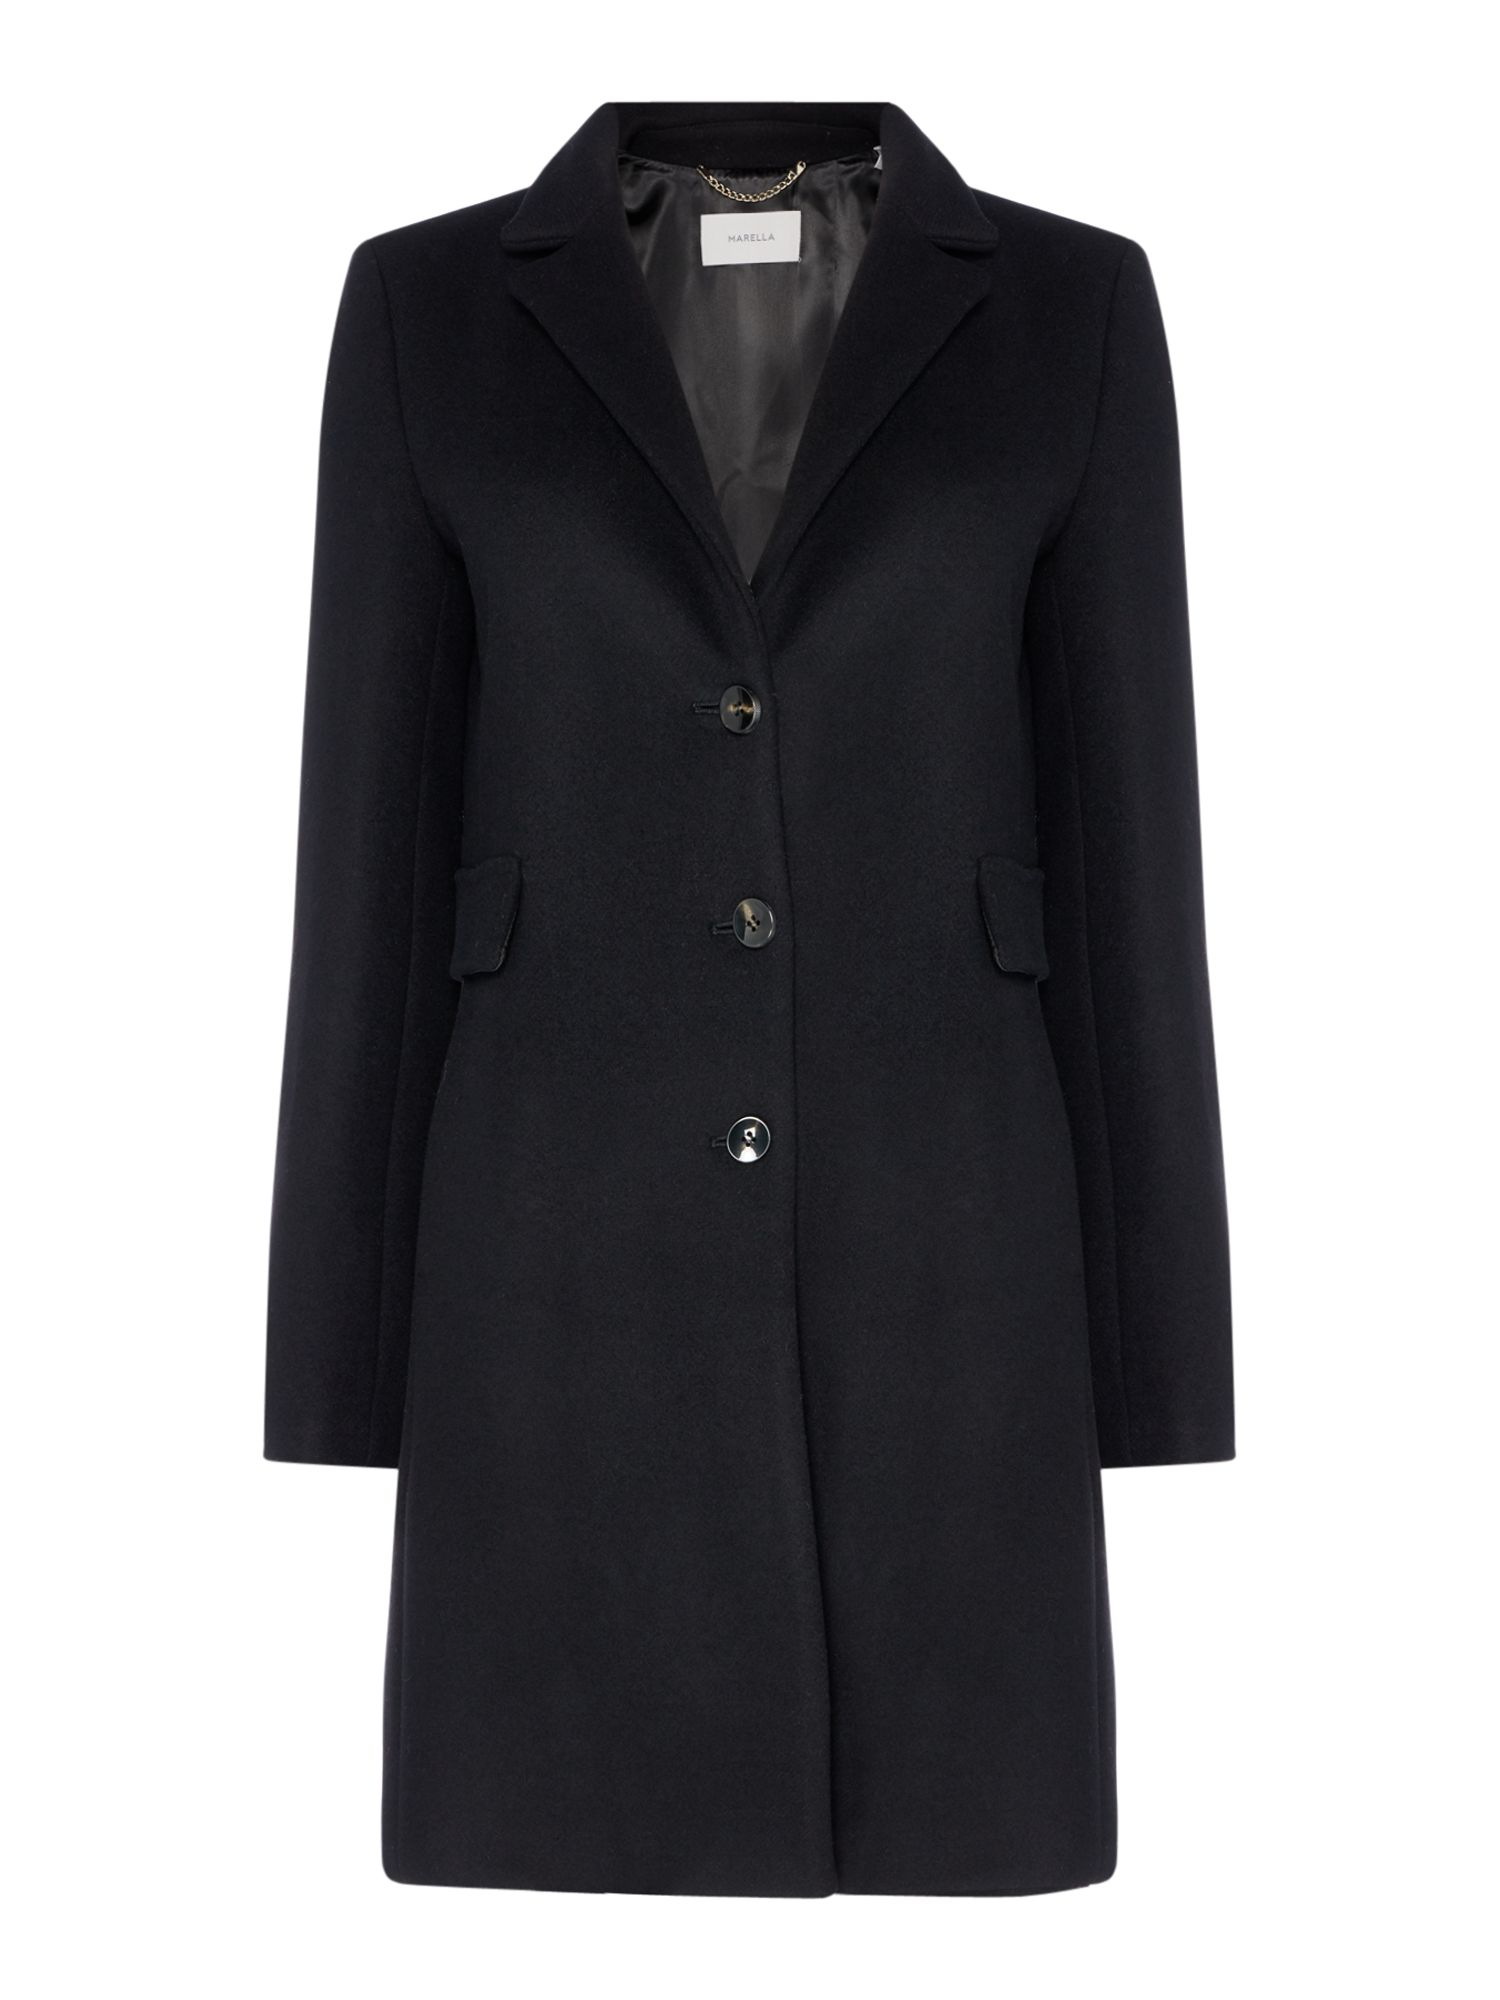 Marella Nankin single breasted wool coat, Black